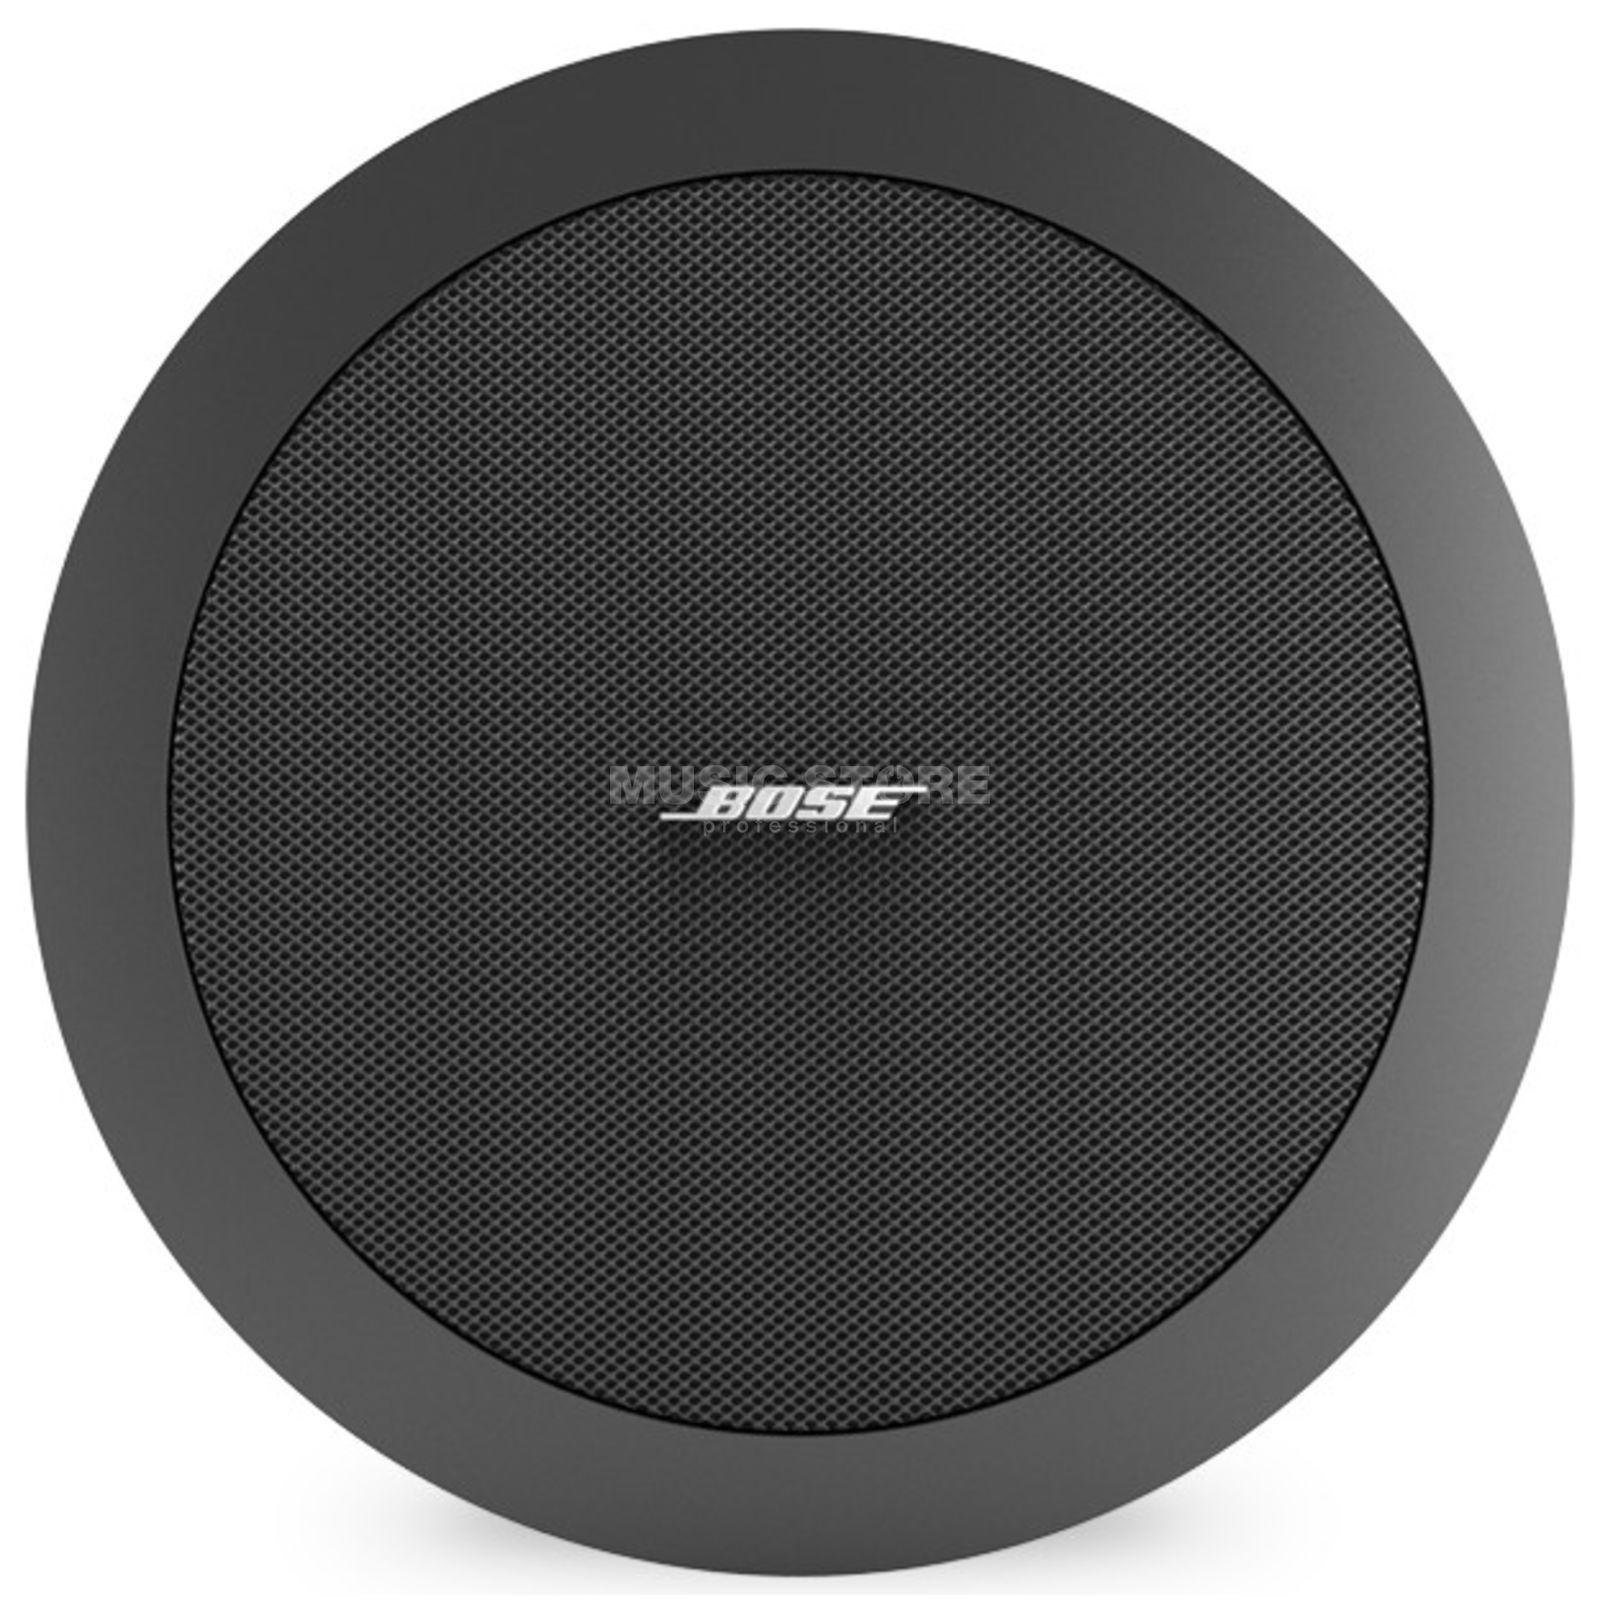 Bose FreeSpace DS16F BK Full Range Single Speaker 2,25 Produktbild